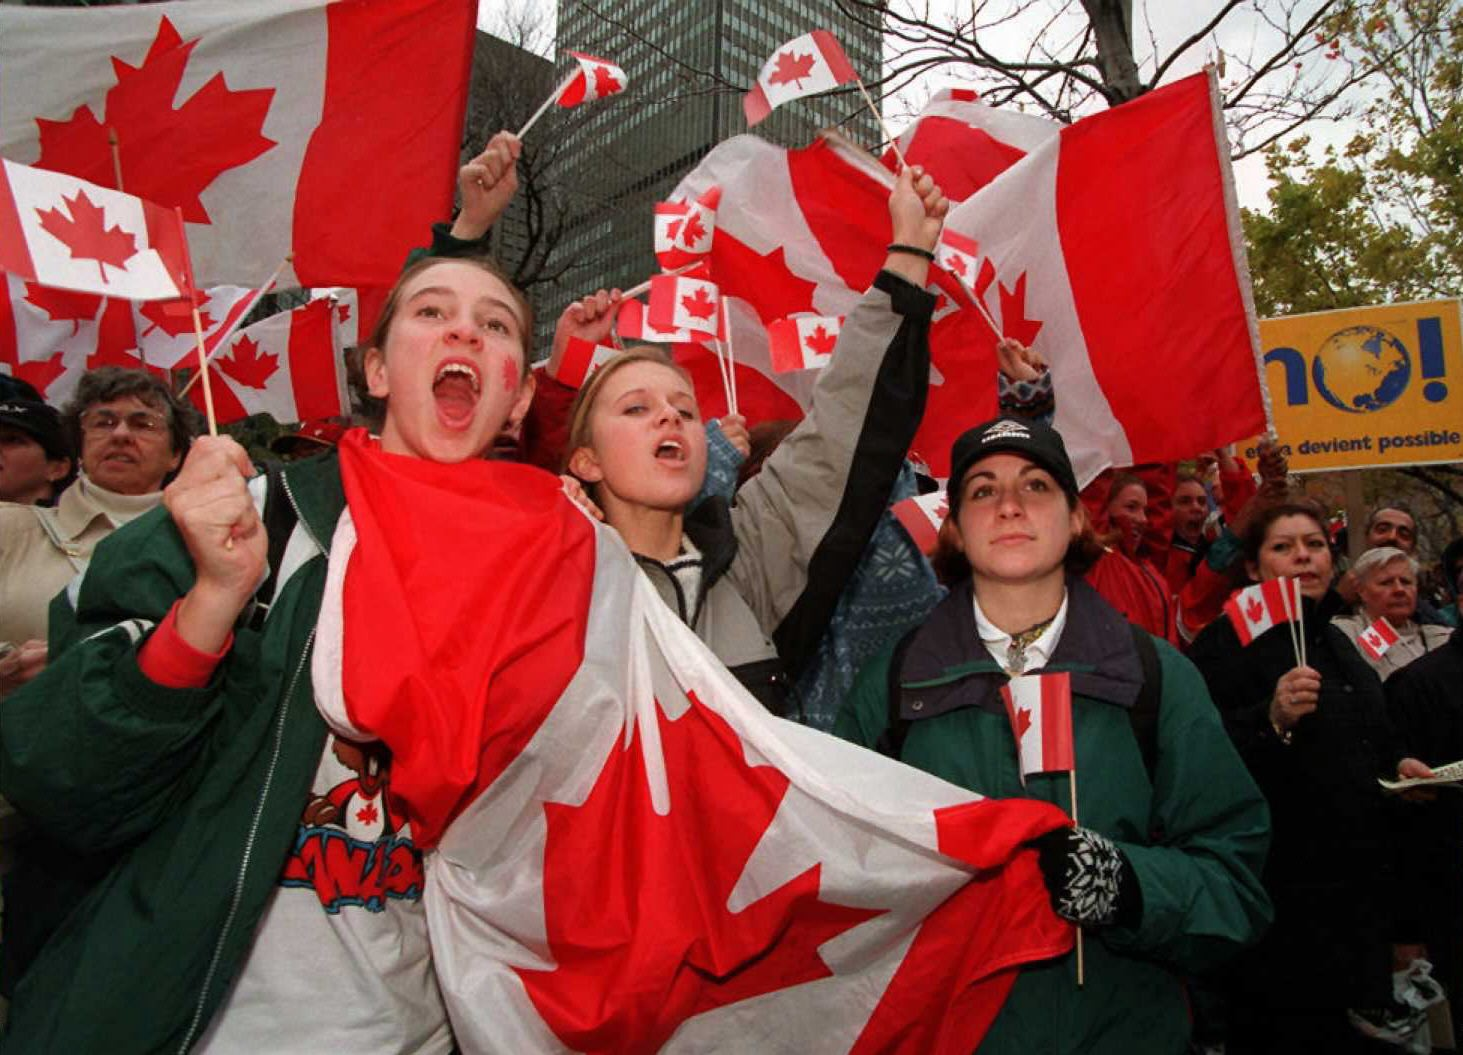 Montreal residents with Canadian flags